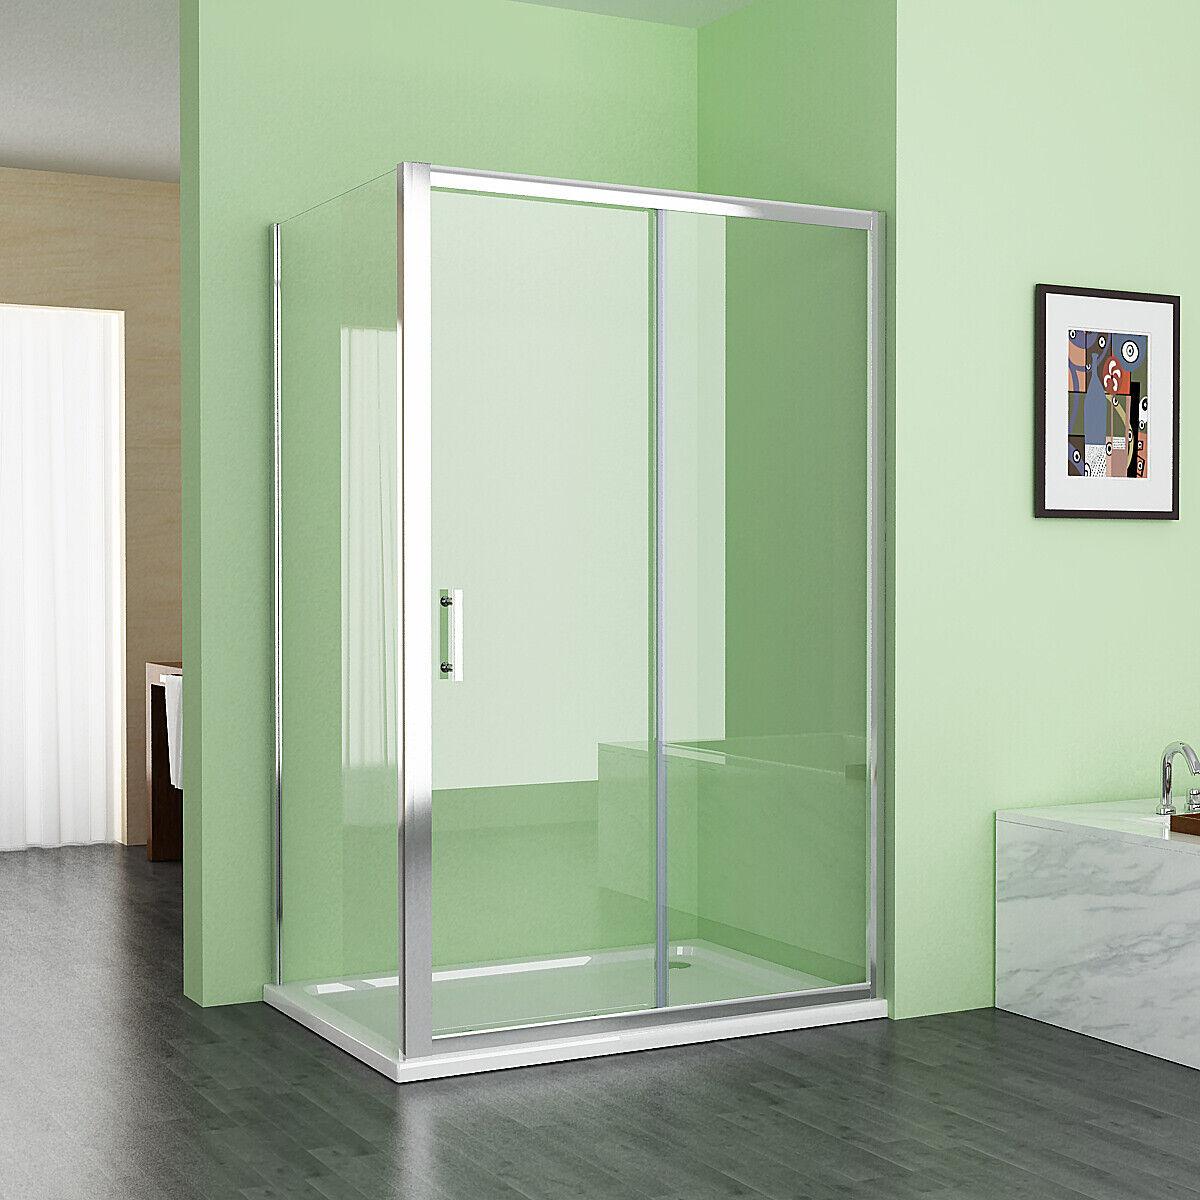 Shower Enclosure And Tray Sliding Door 6mm Easyclean Glass Rectangle Cubicle 185